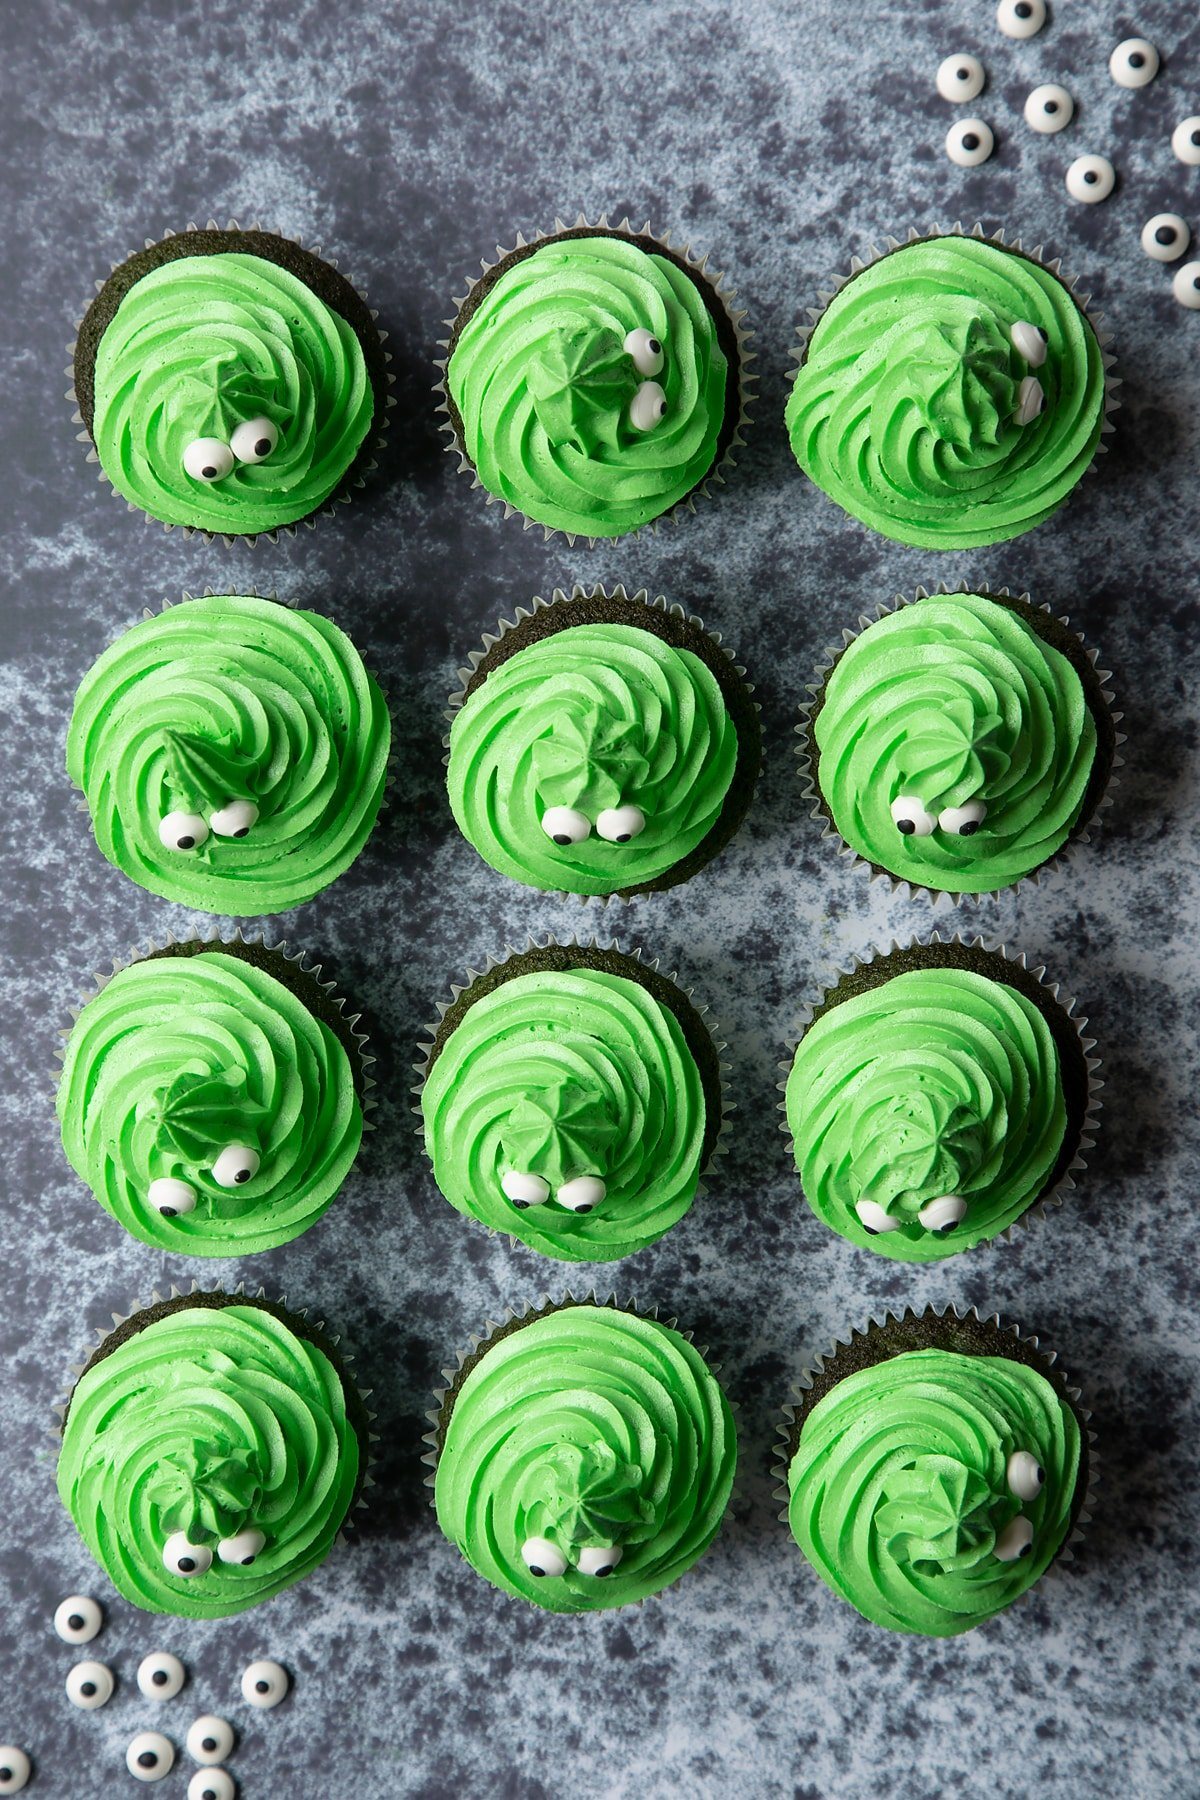 Green vanilla chocolate chip cupcakes decorated with swirls of green peppermint frosting and candy eyeballs to look like green monster cakes.